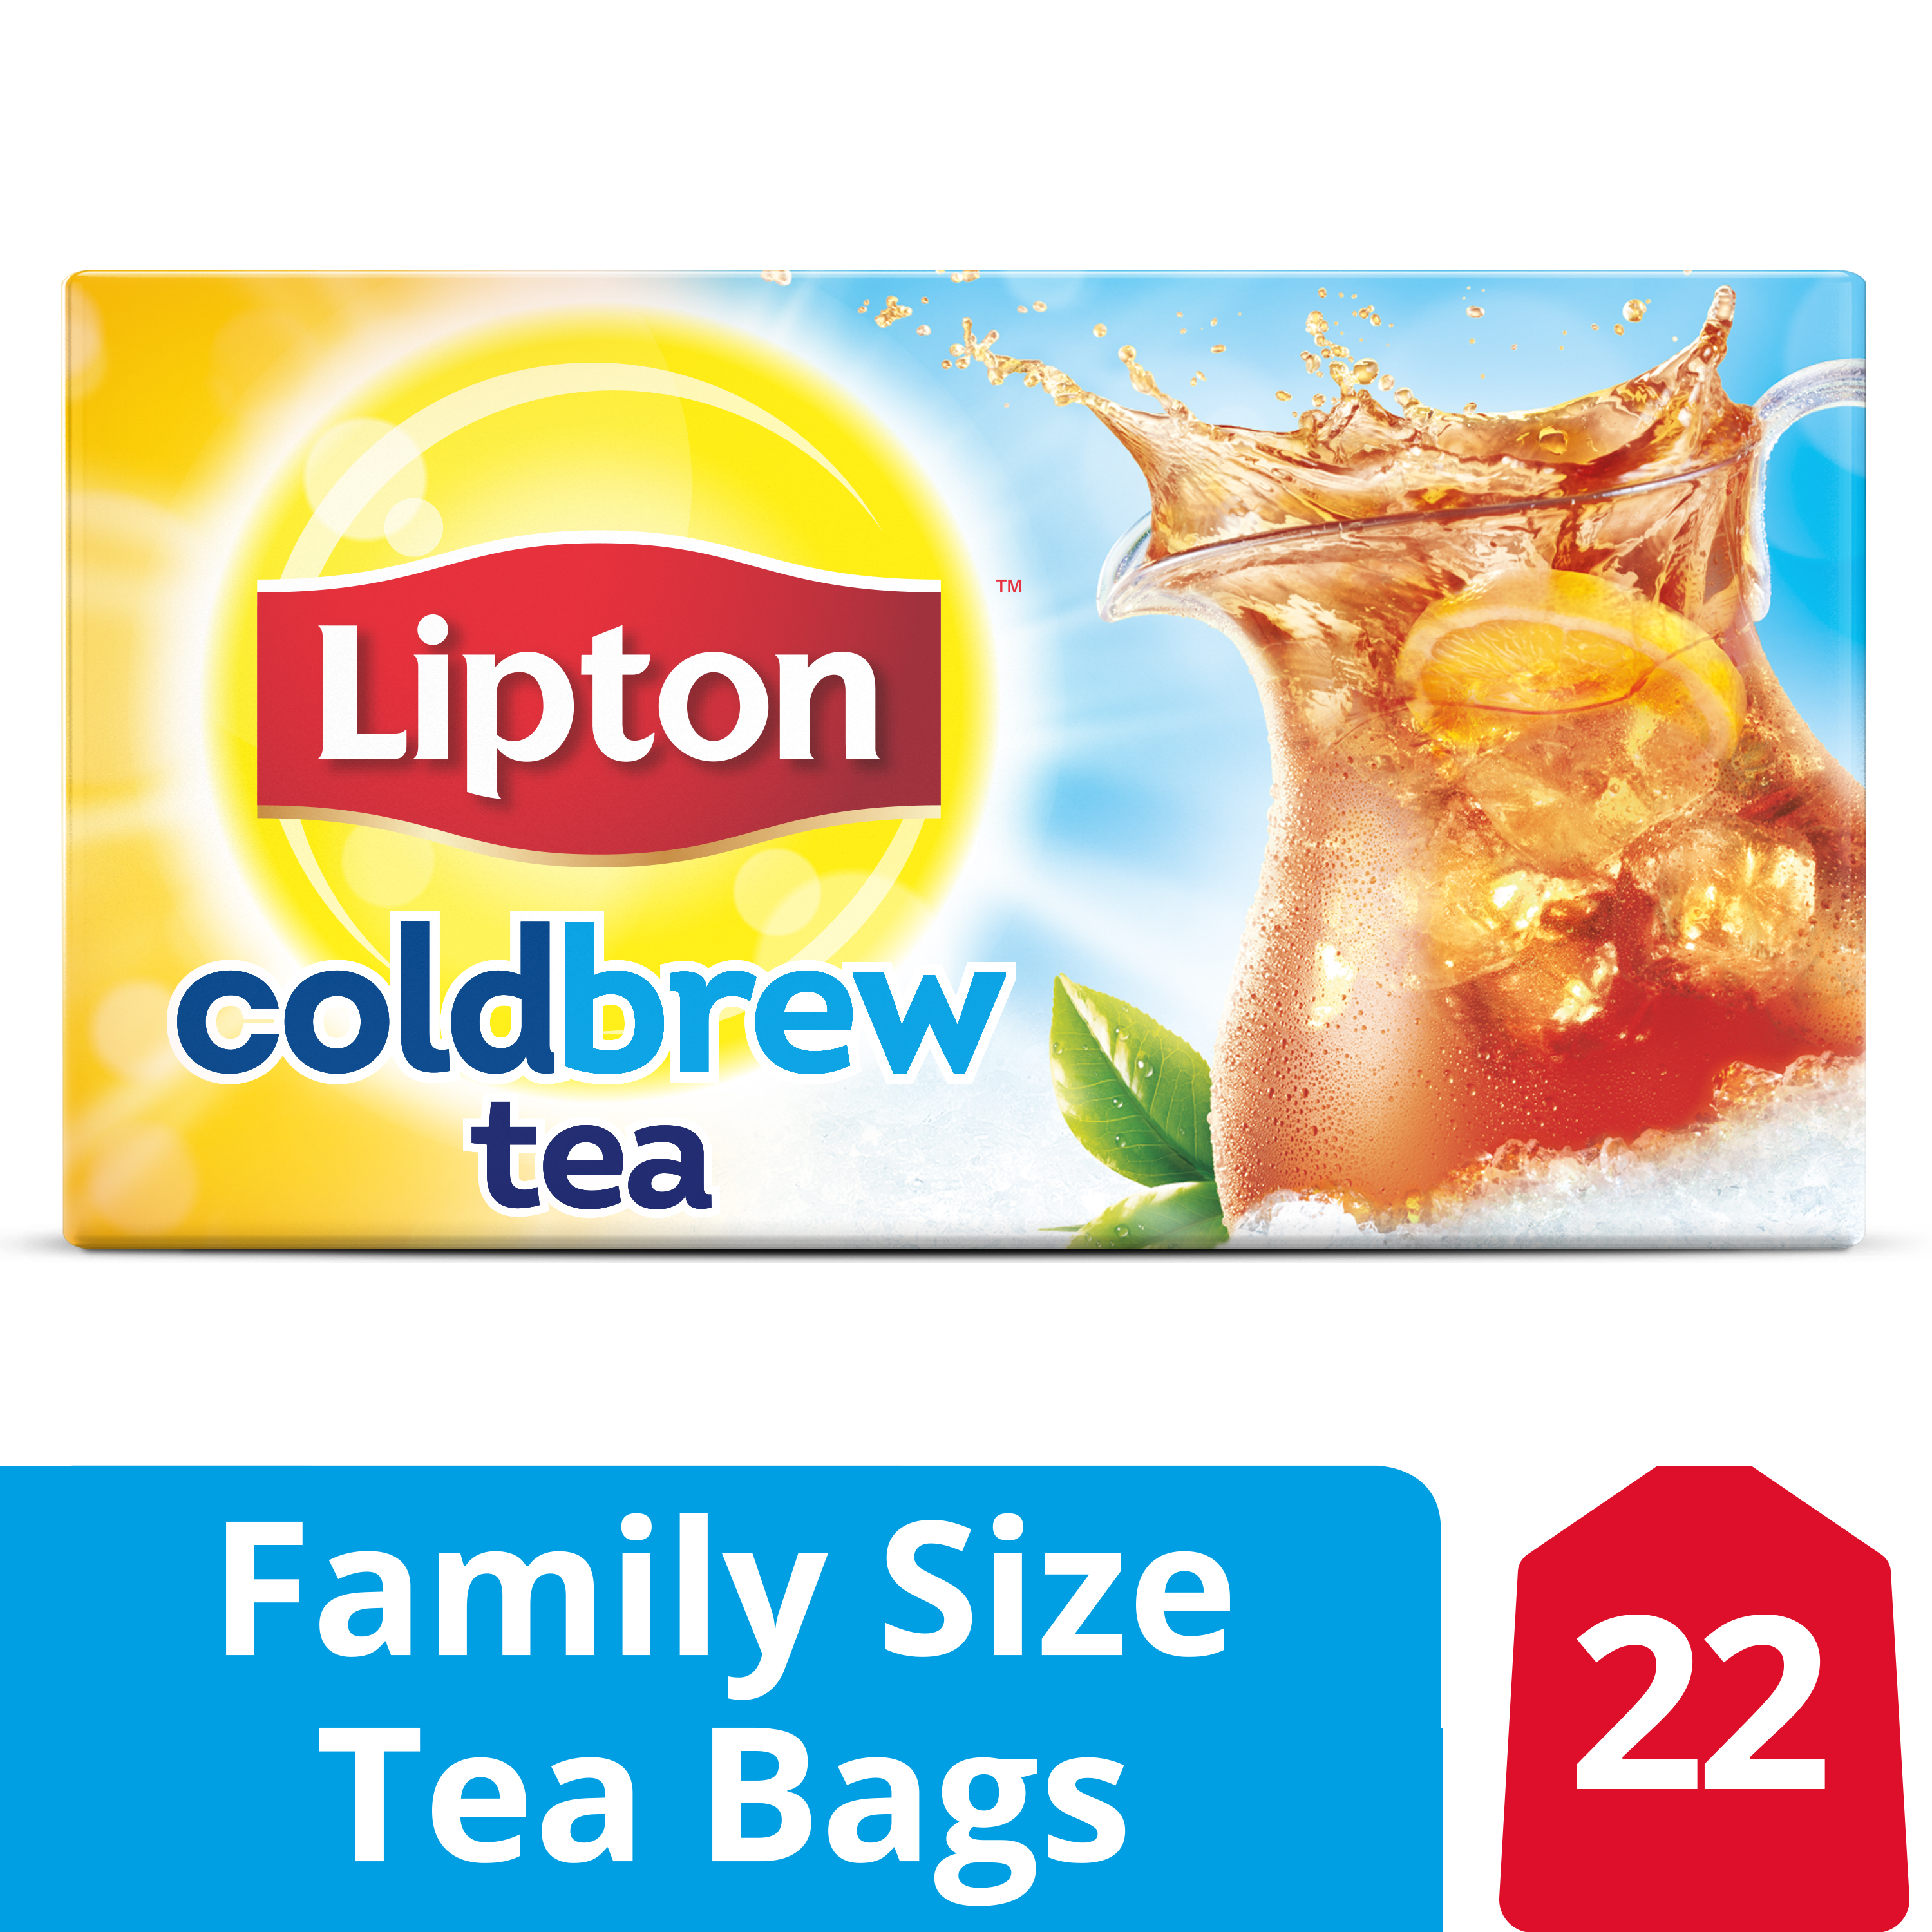 Lipton Cold Brew Black tea Family Iced Tea Bags 22 ct